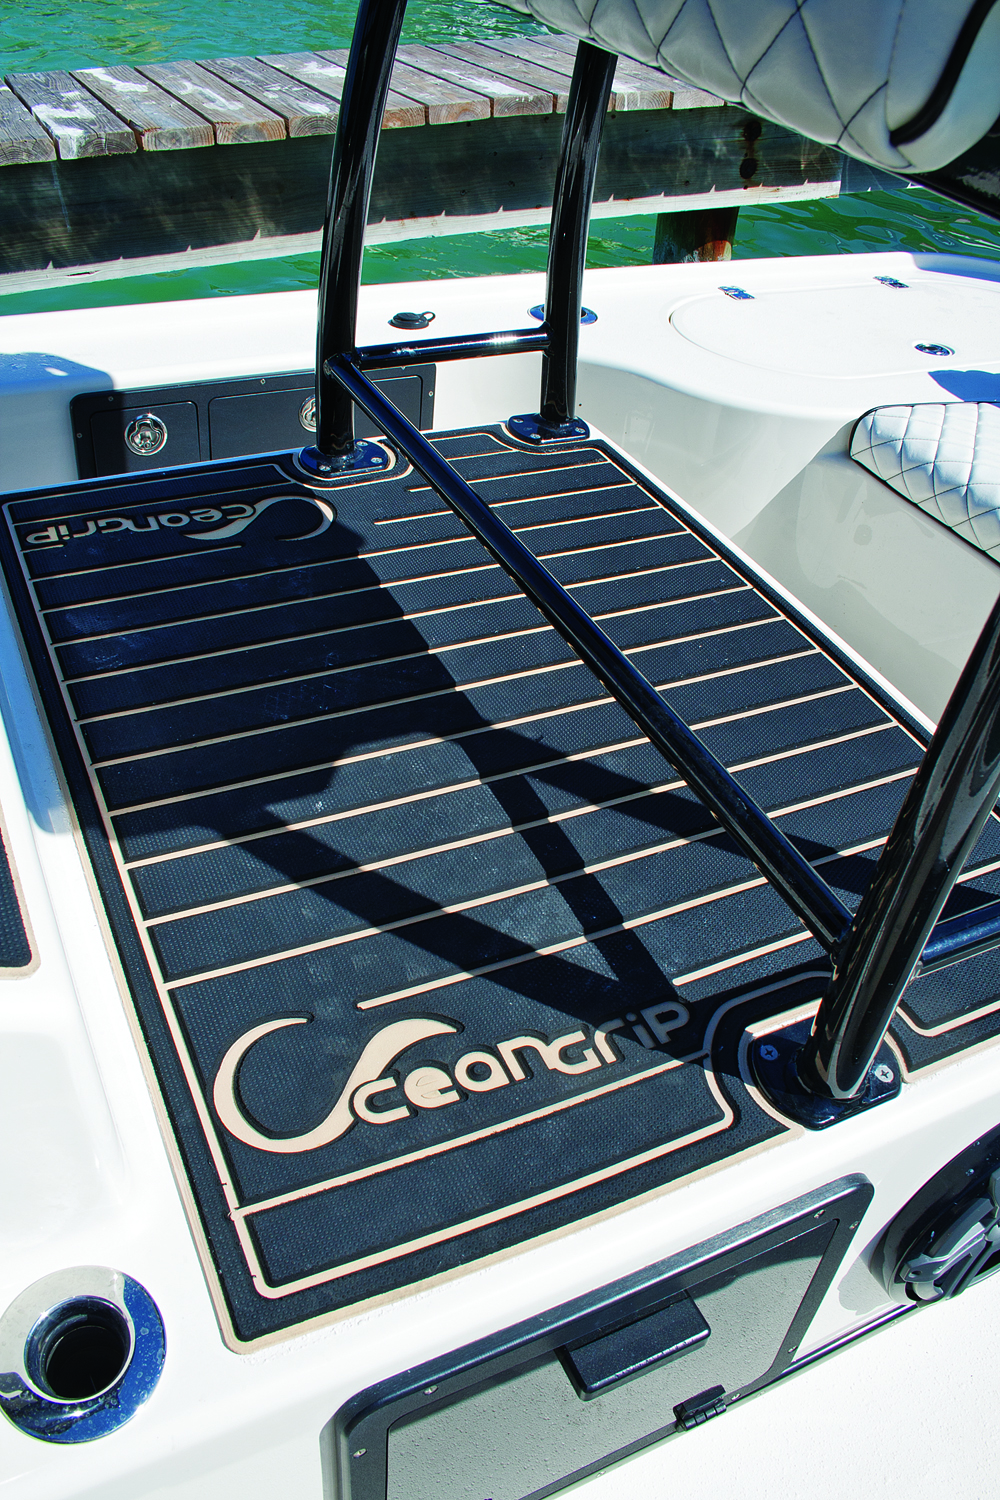 EVA Foam Decks: New Nonskid for Fishing Boats | Sport